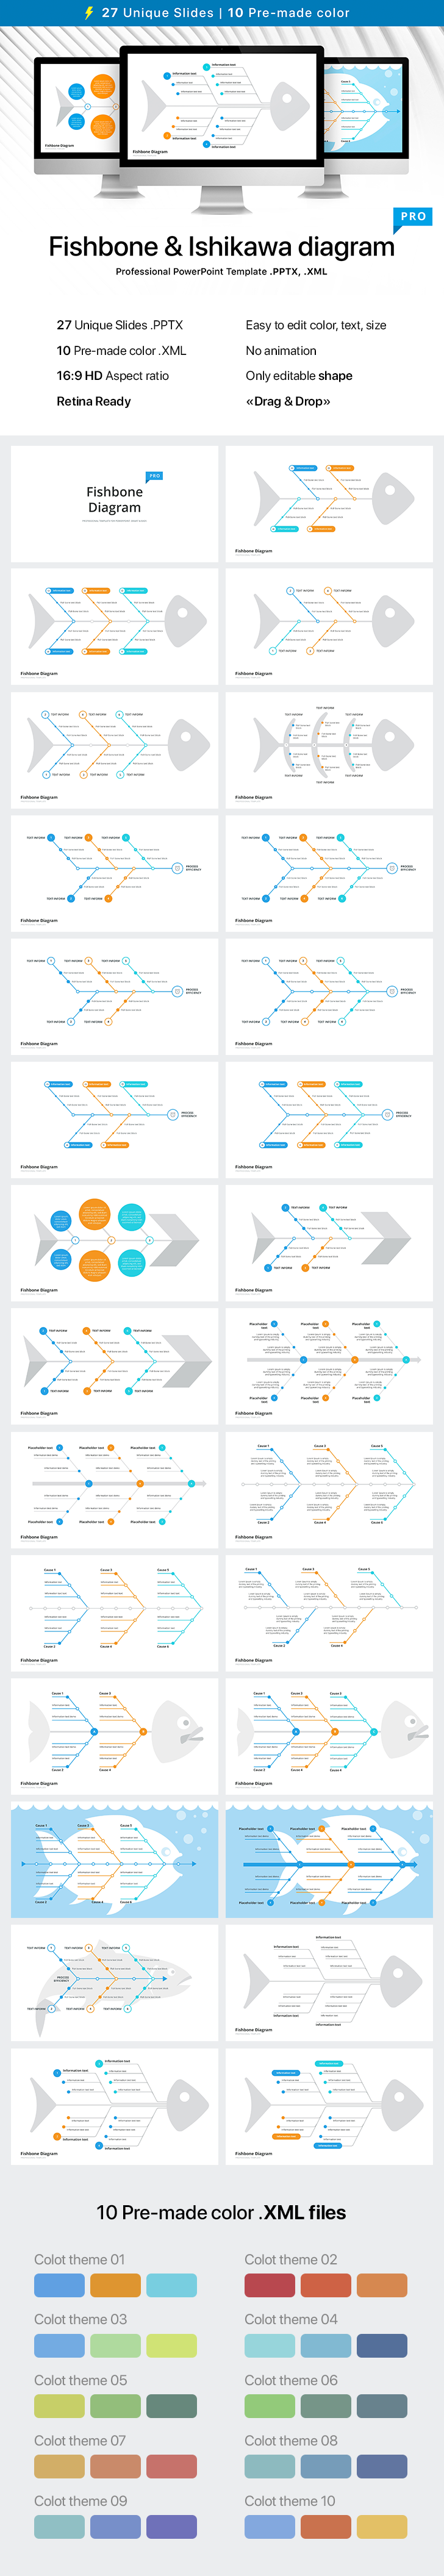 Fishbone diagram template for powerpoint download now fishbone diagram template for powerpoint ccuart Gallery